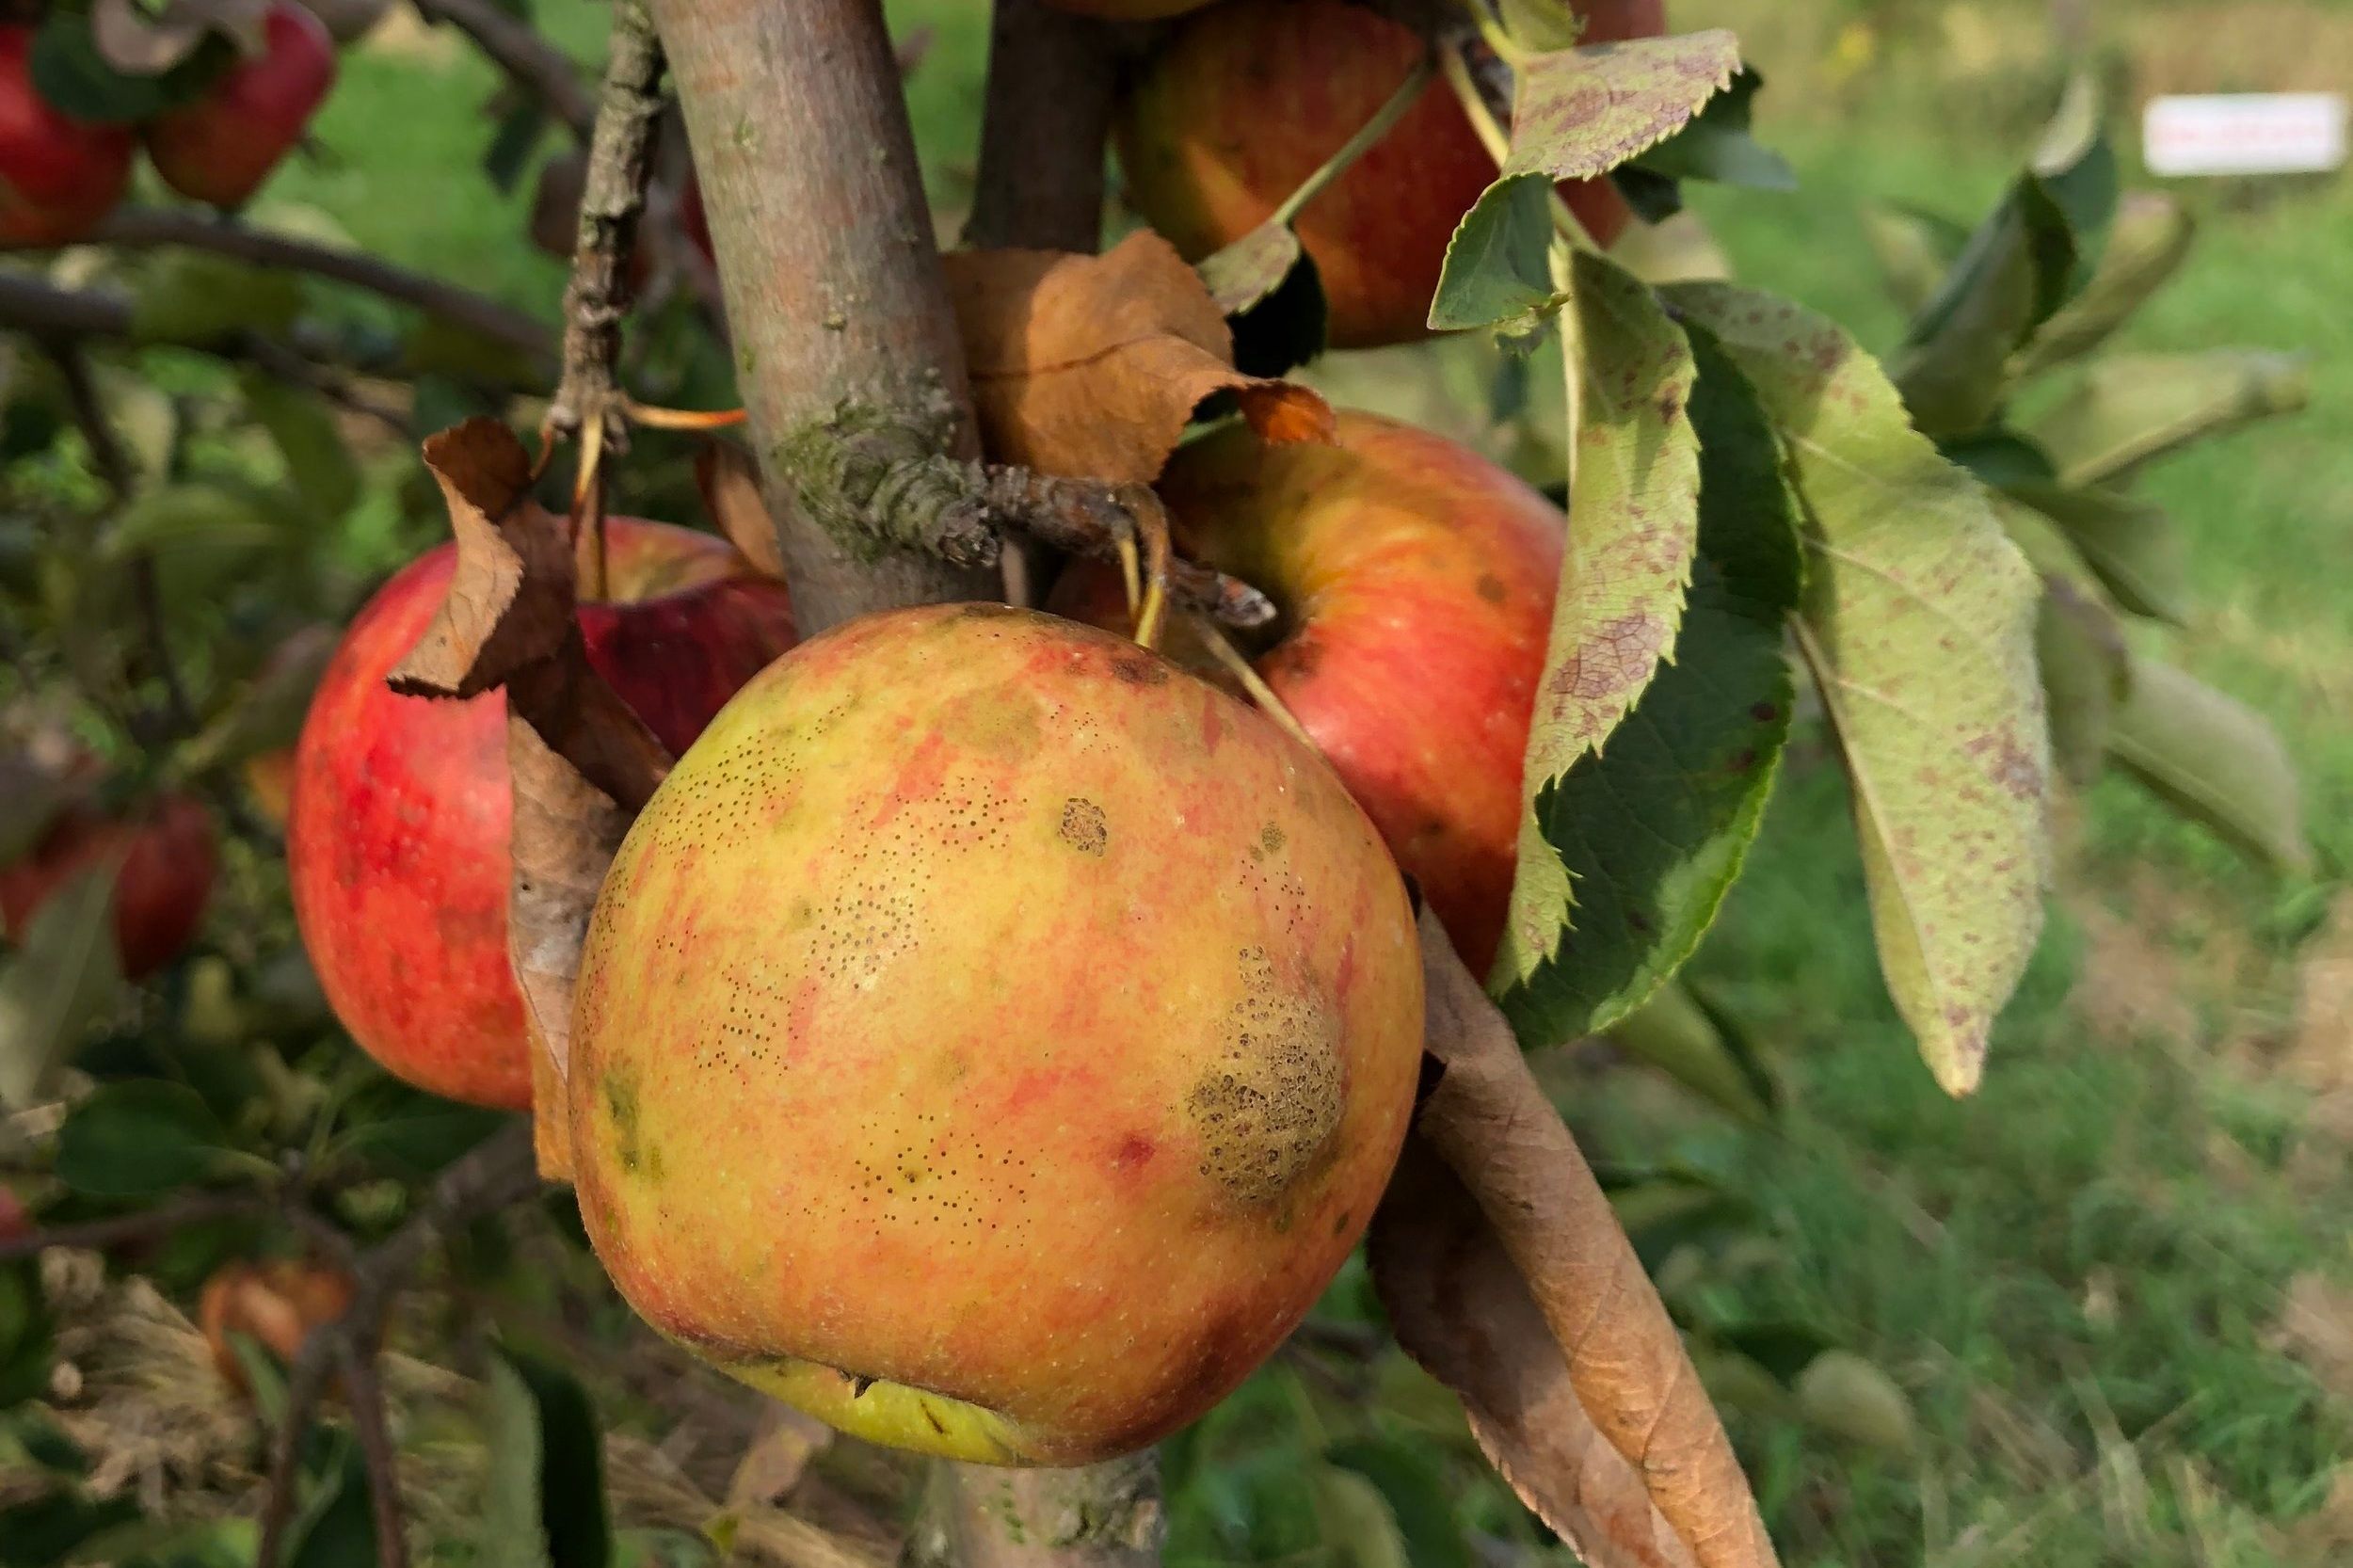 Fly Speck  is a fungal disease that covers the apple peel with clusters of dark freckles. The freckled peel has no impact on the taste or texture of the apple. It can be eaten as normal, directly from the tree!